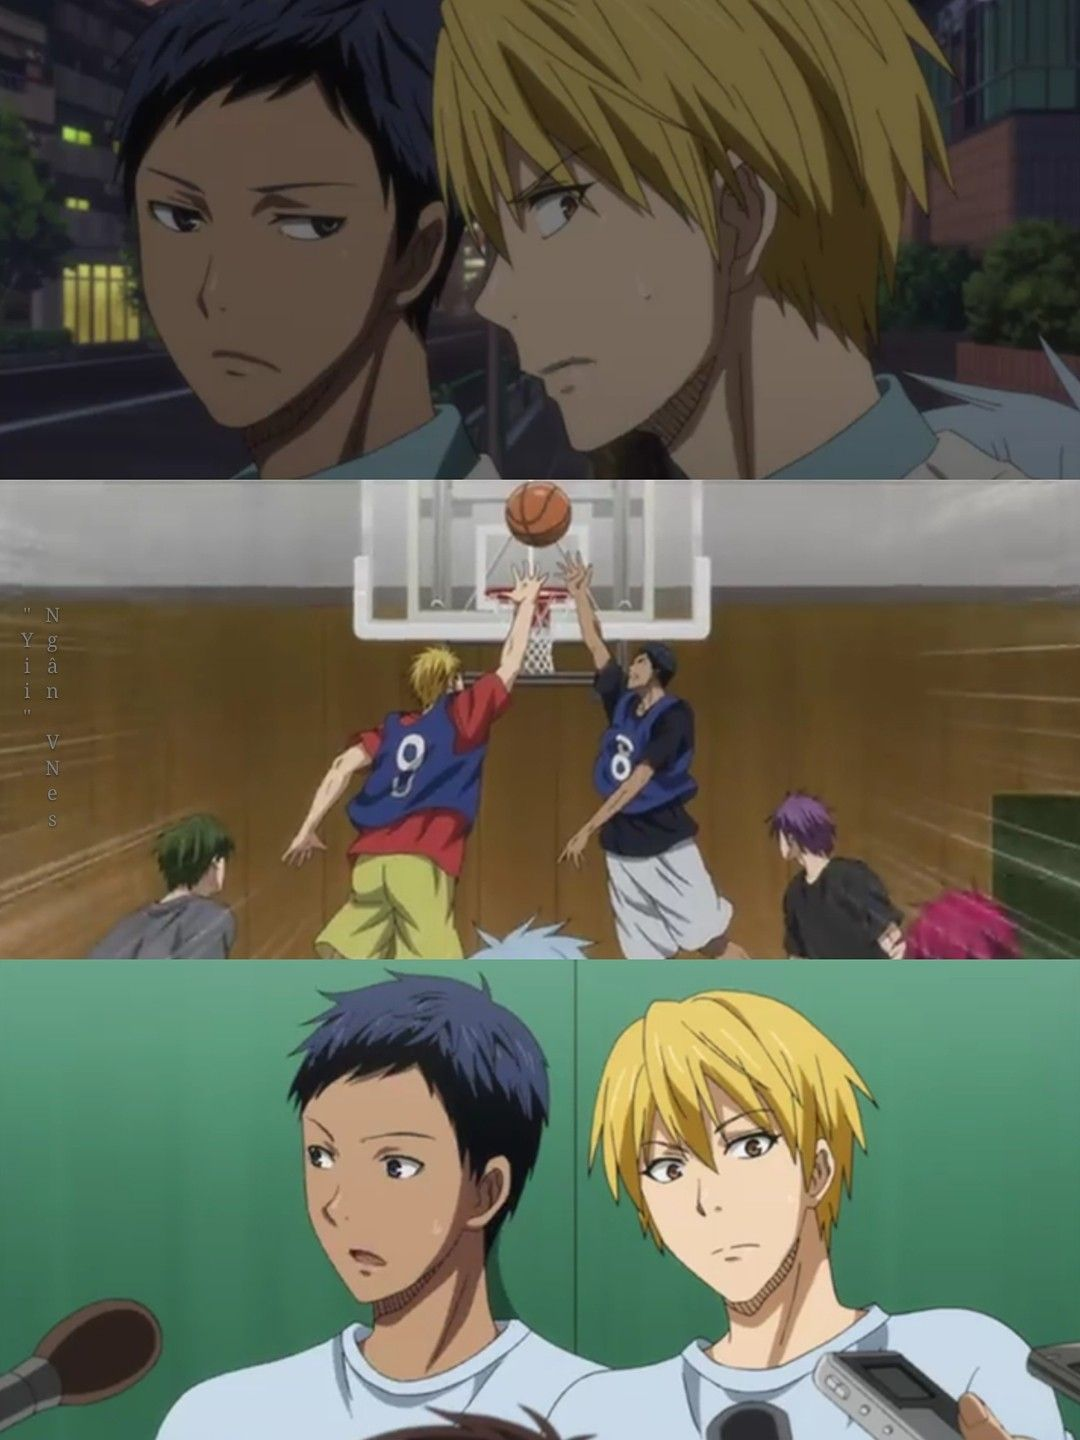 They Look Like They Re Getting Interviewed About Their Relationship Love Life Aomine X Kise Aokise